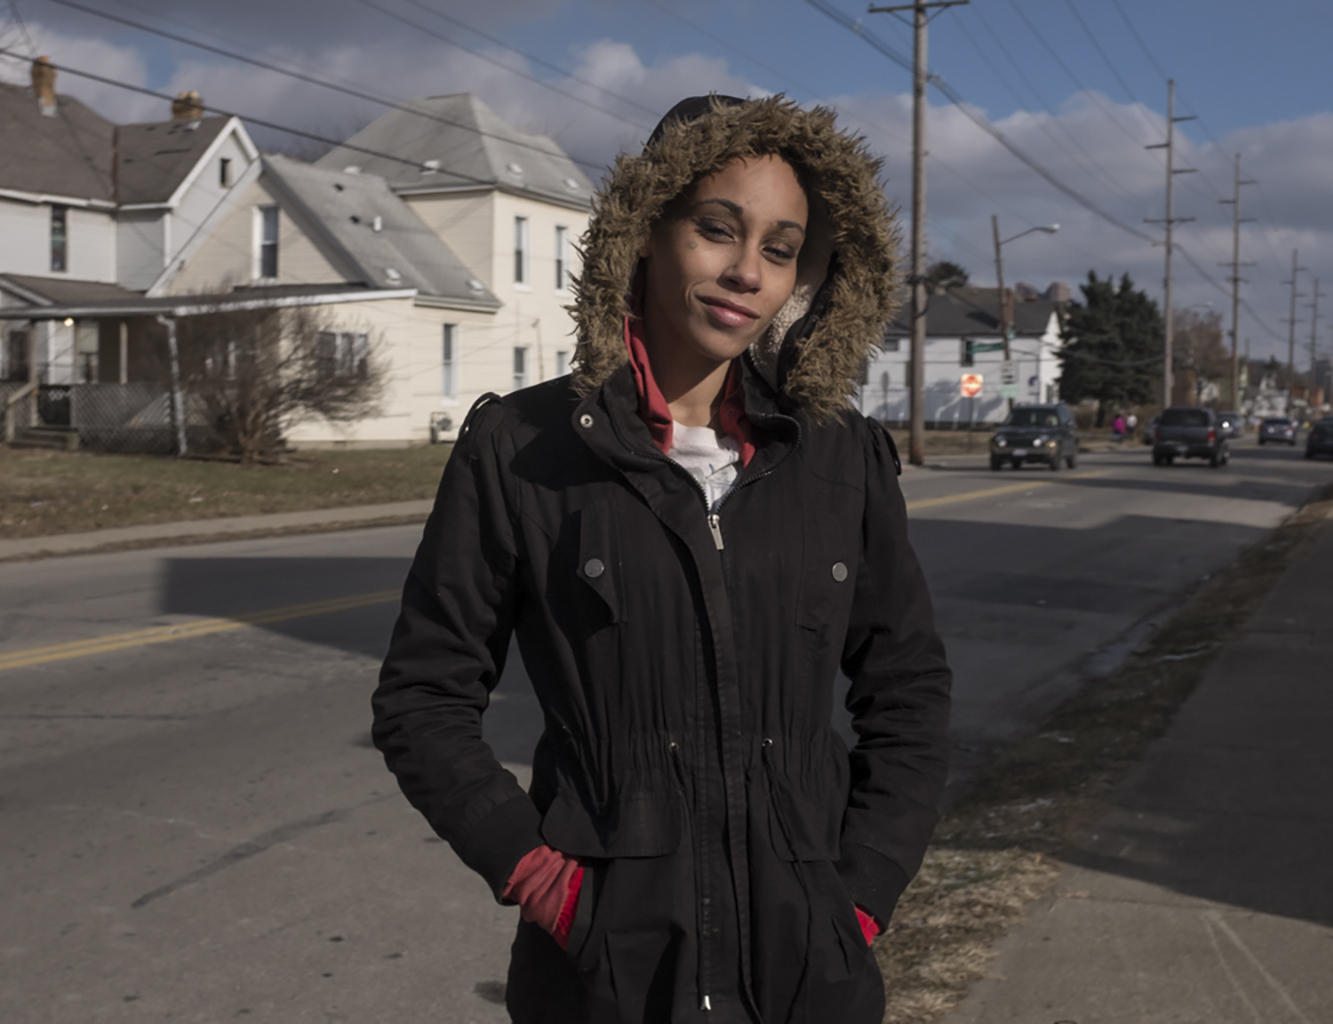 On Sullivant Avenue, A Cycle Of Heroin And Prostitution | WOSU Radio